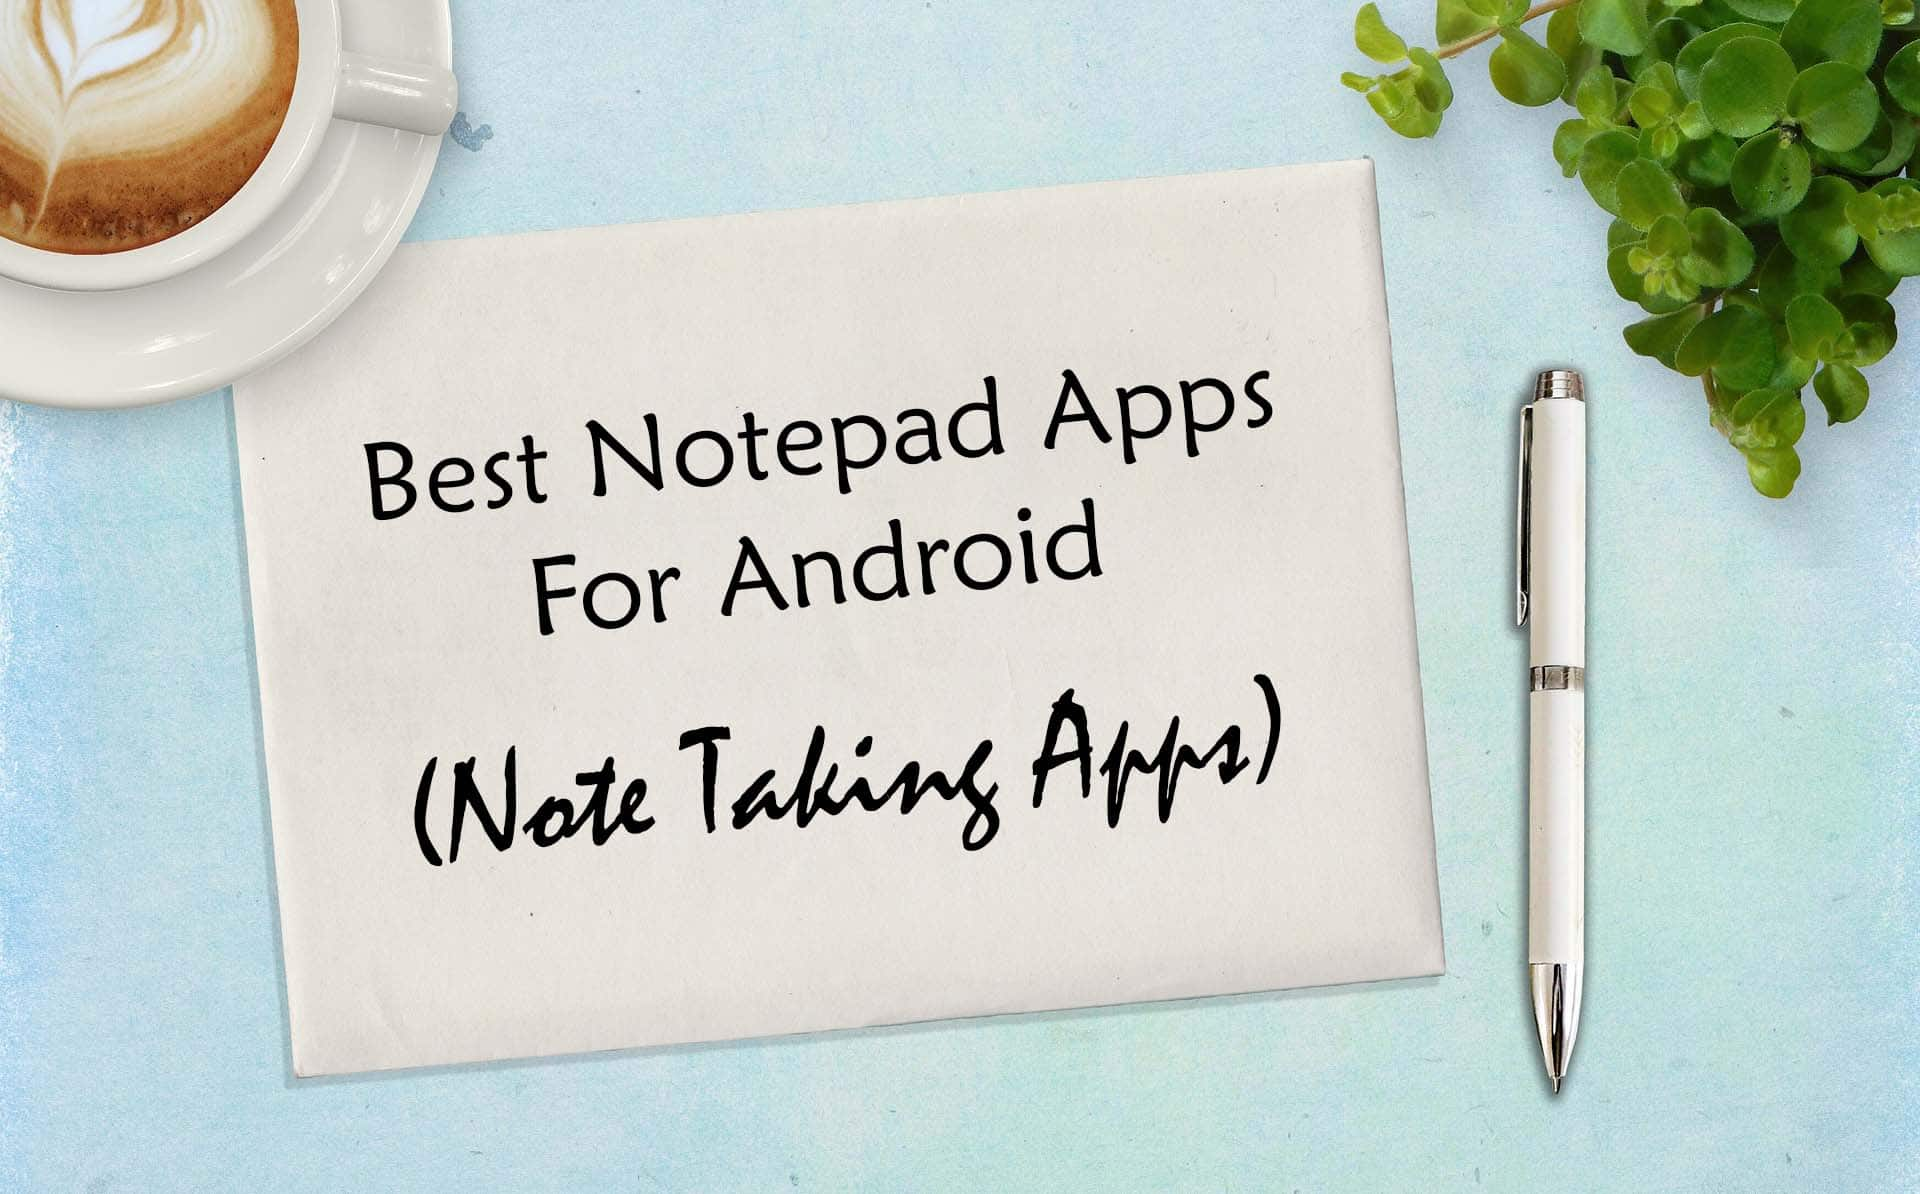 13 Best Notepad Apps For Android (Note Taking Apps) - Trick